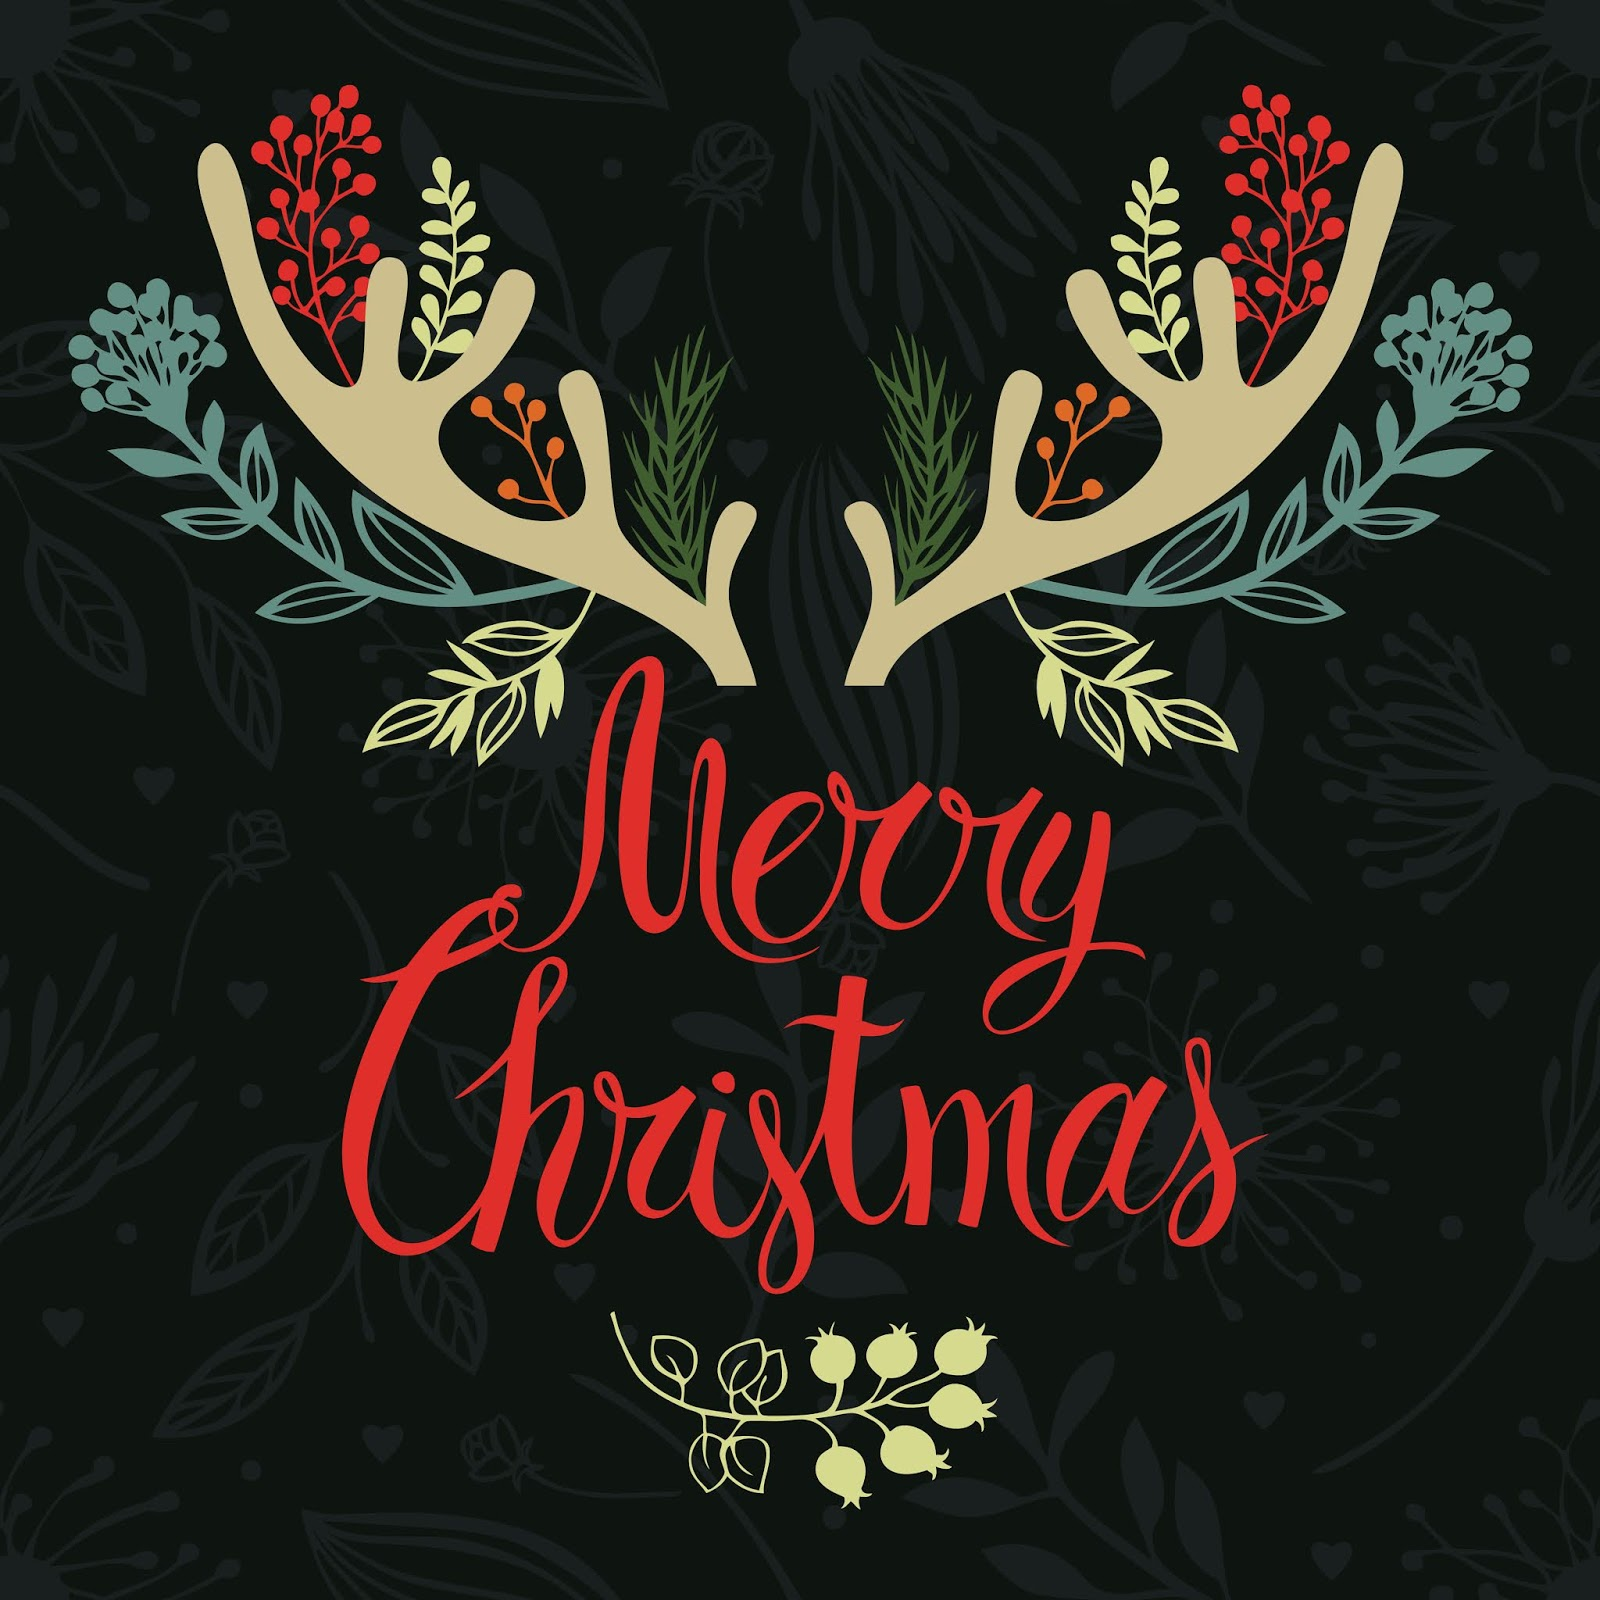 Christmas Antlers Postcard Cover Design Calligraphy Forest Herbs Free Download Vector CDR, AI, EPS and PNG Formats